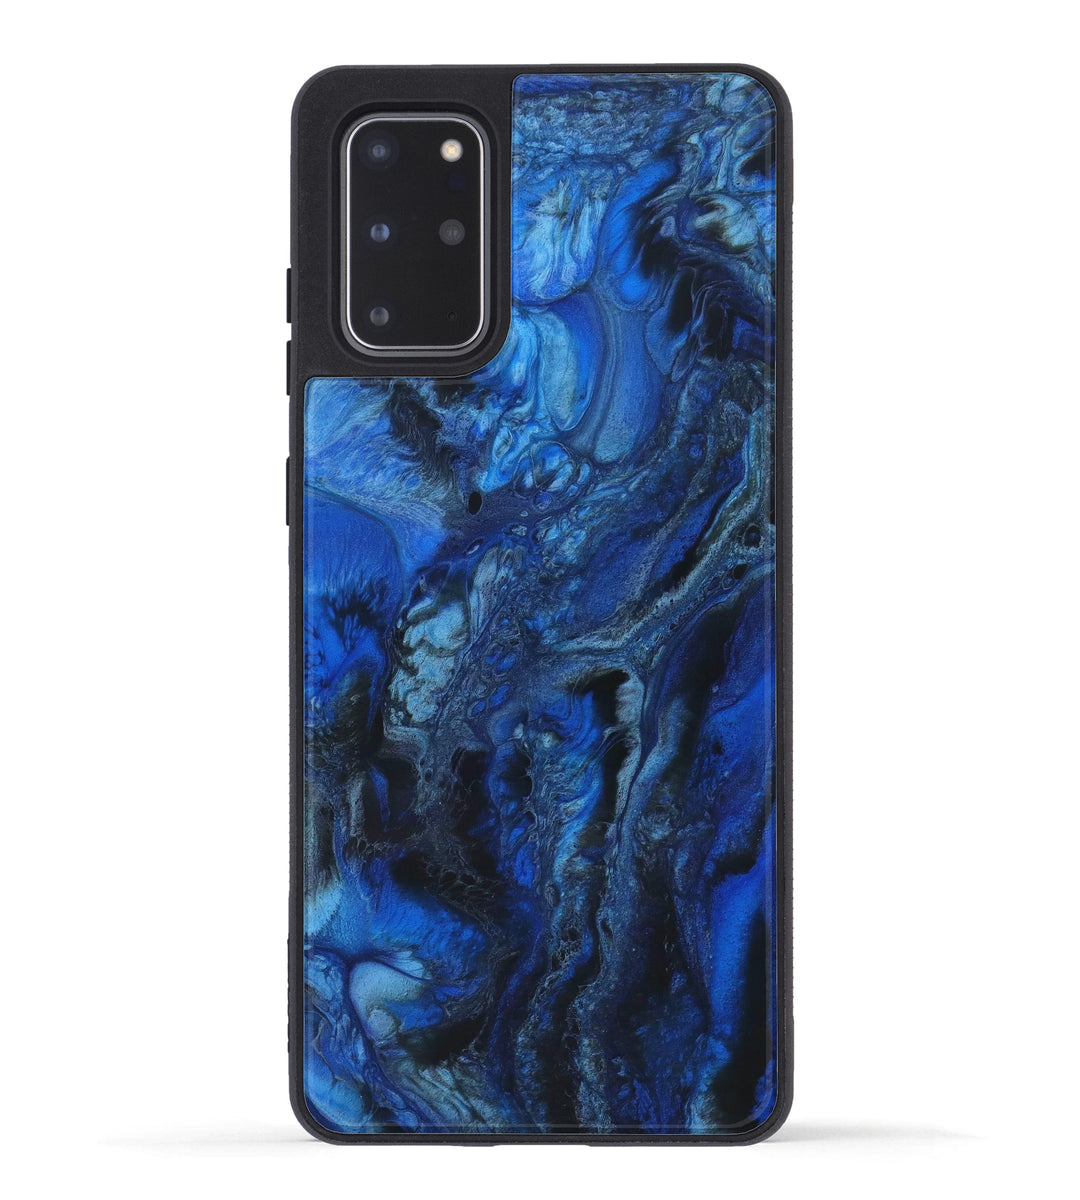 Galaxy S20 Plus ResinArt Phone Case - Lou (Dark Blue, 347518)